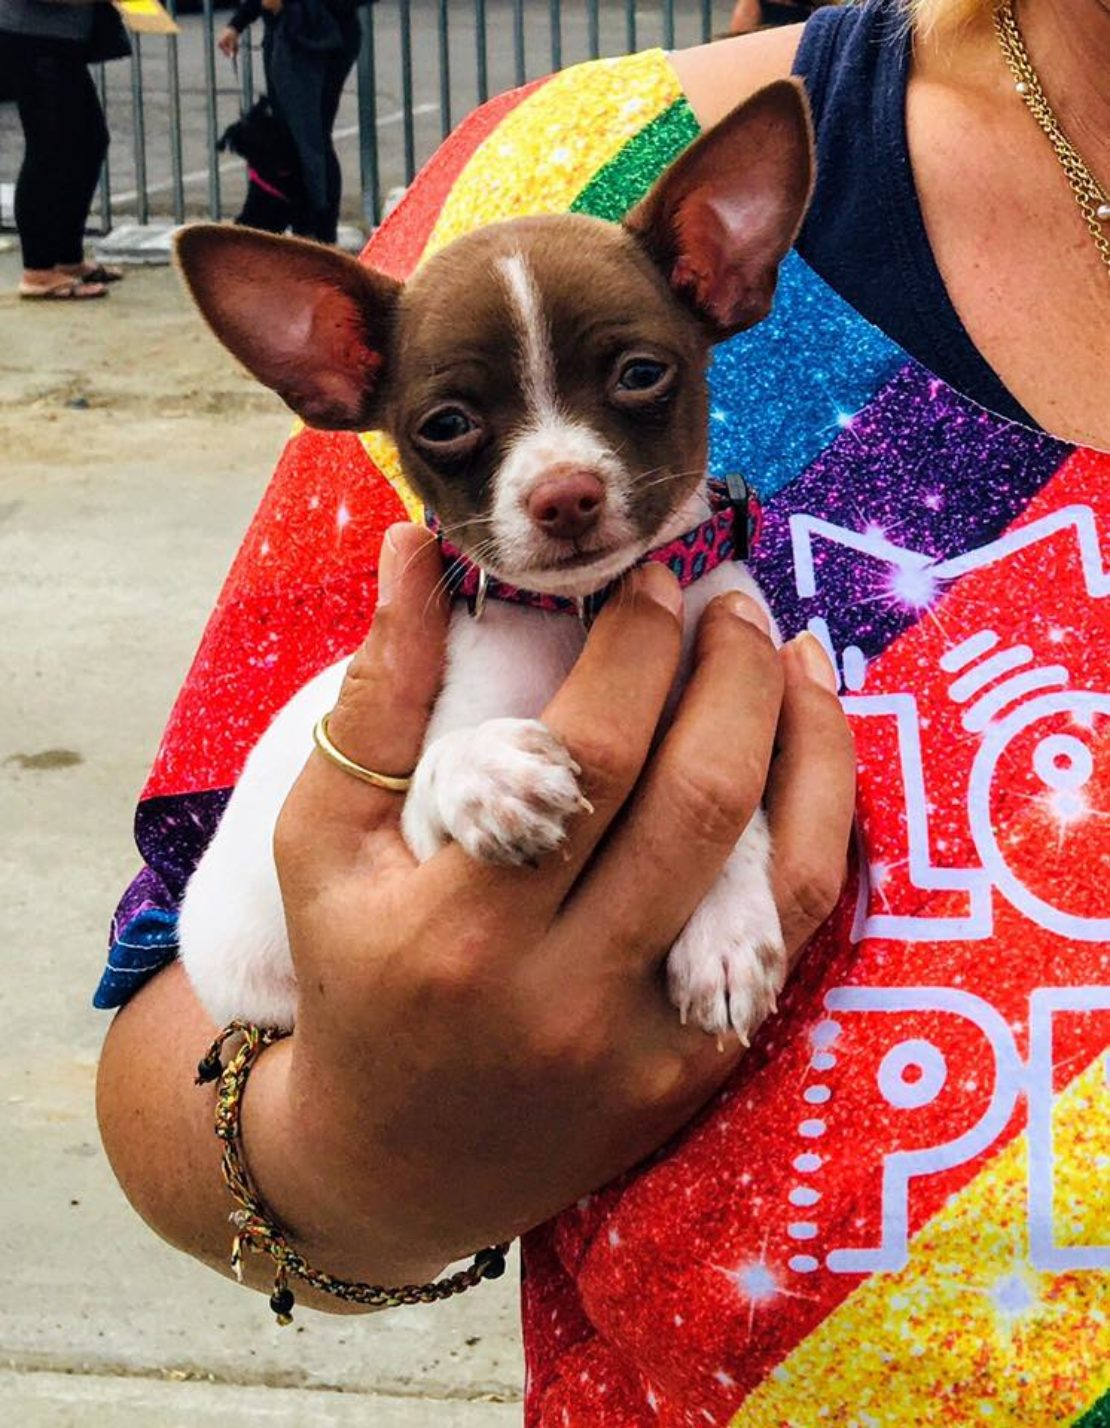 Chihuahua with brown ears and mask and white muzzle and body held by human in Pride shirt.